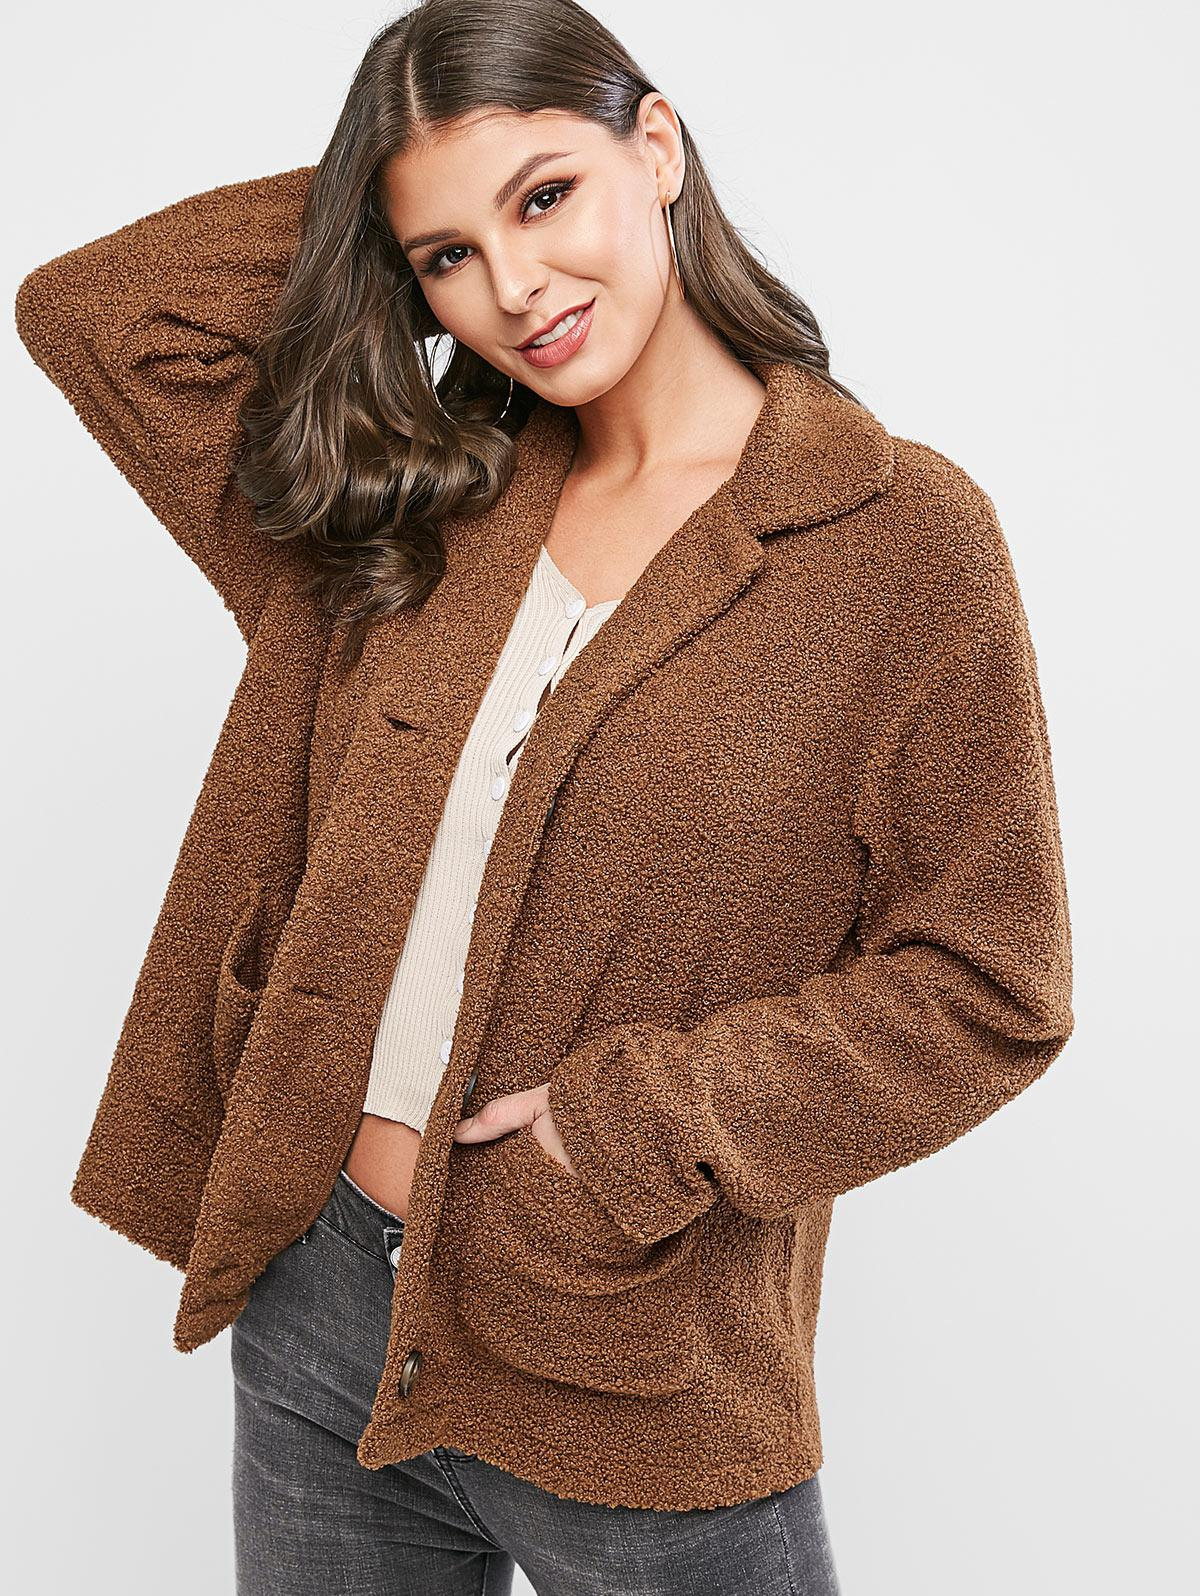 ZAFUL Button Front Dual Pocket Teddy Jacket